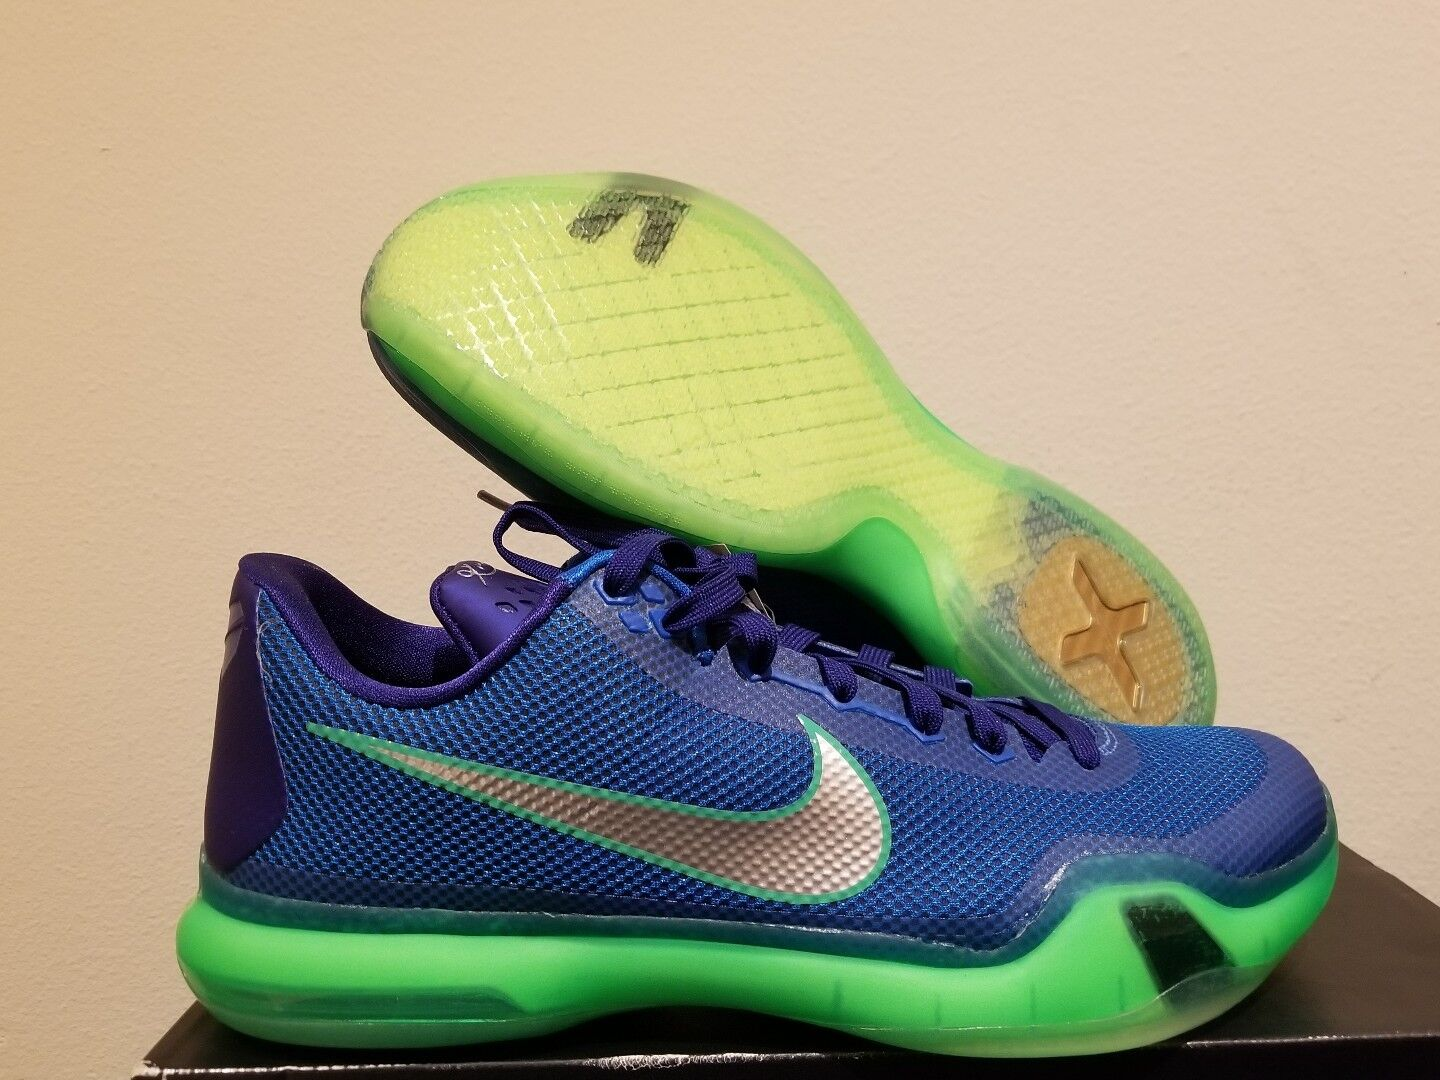 bbba59ec7ca5 ... italy nike kobe shoes x 10 emerald city seahawks blue green shoes kobe  size 11 705317